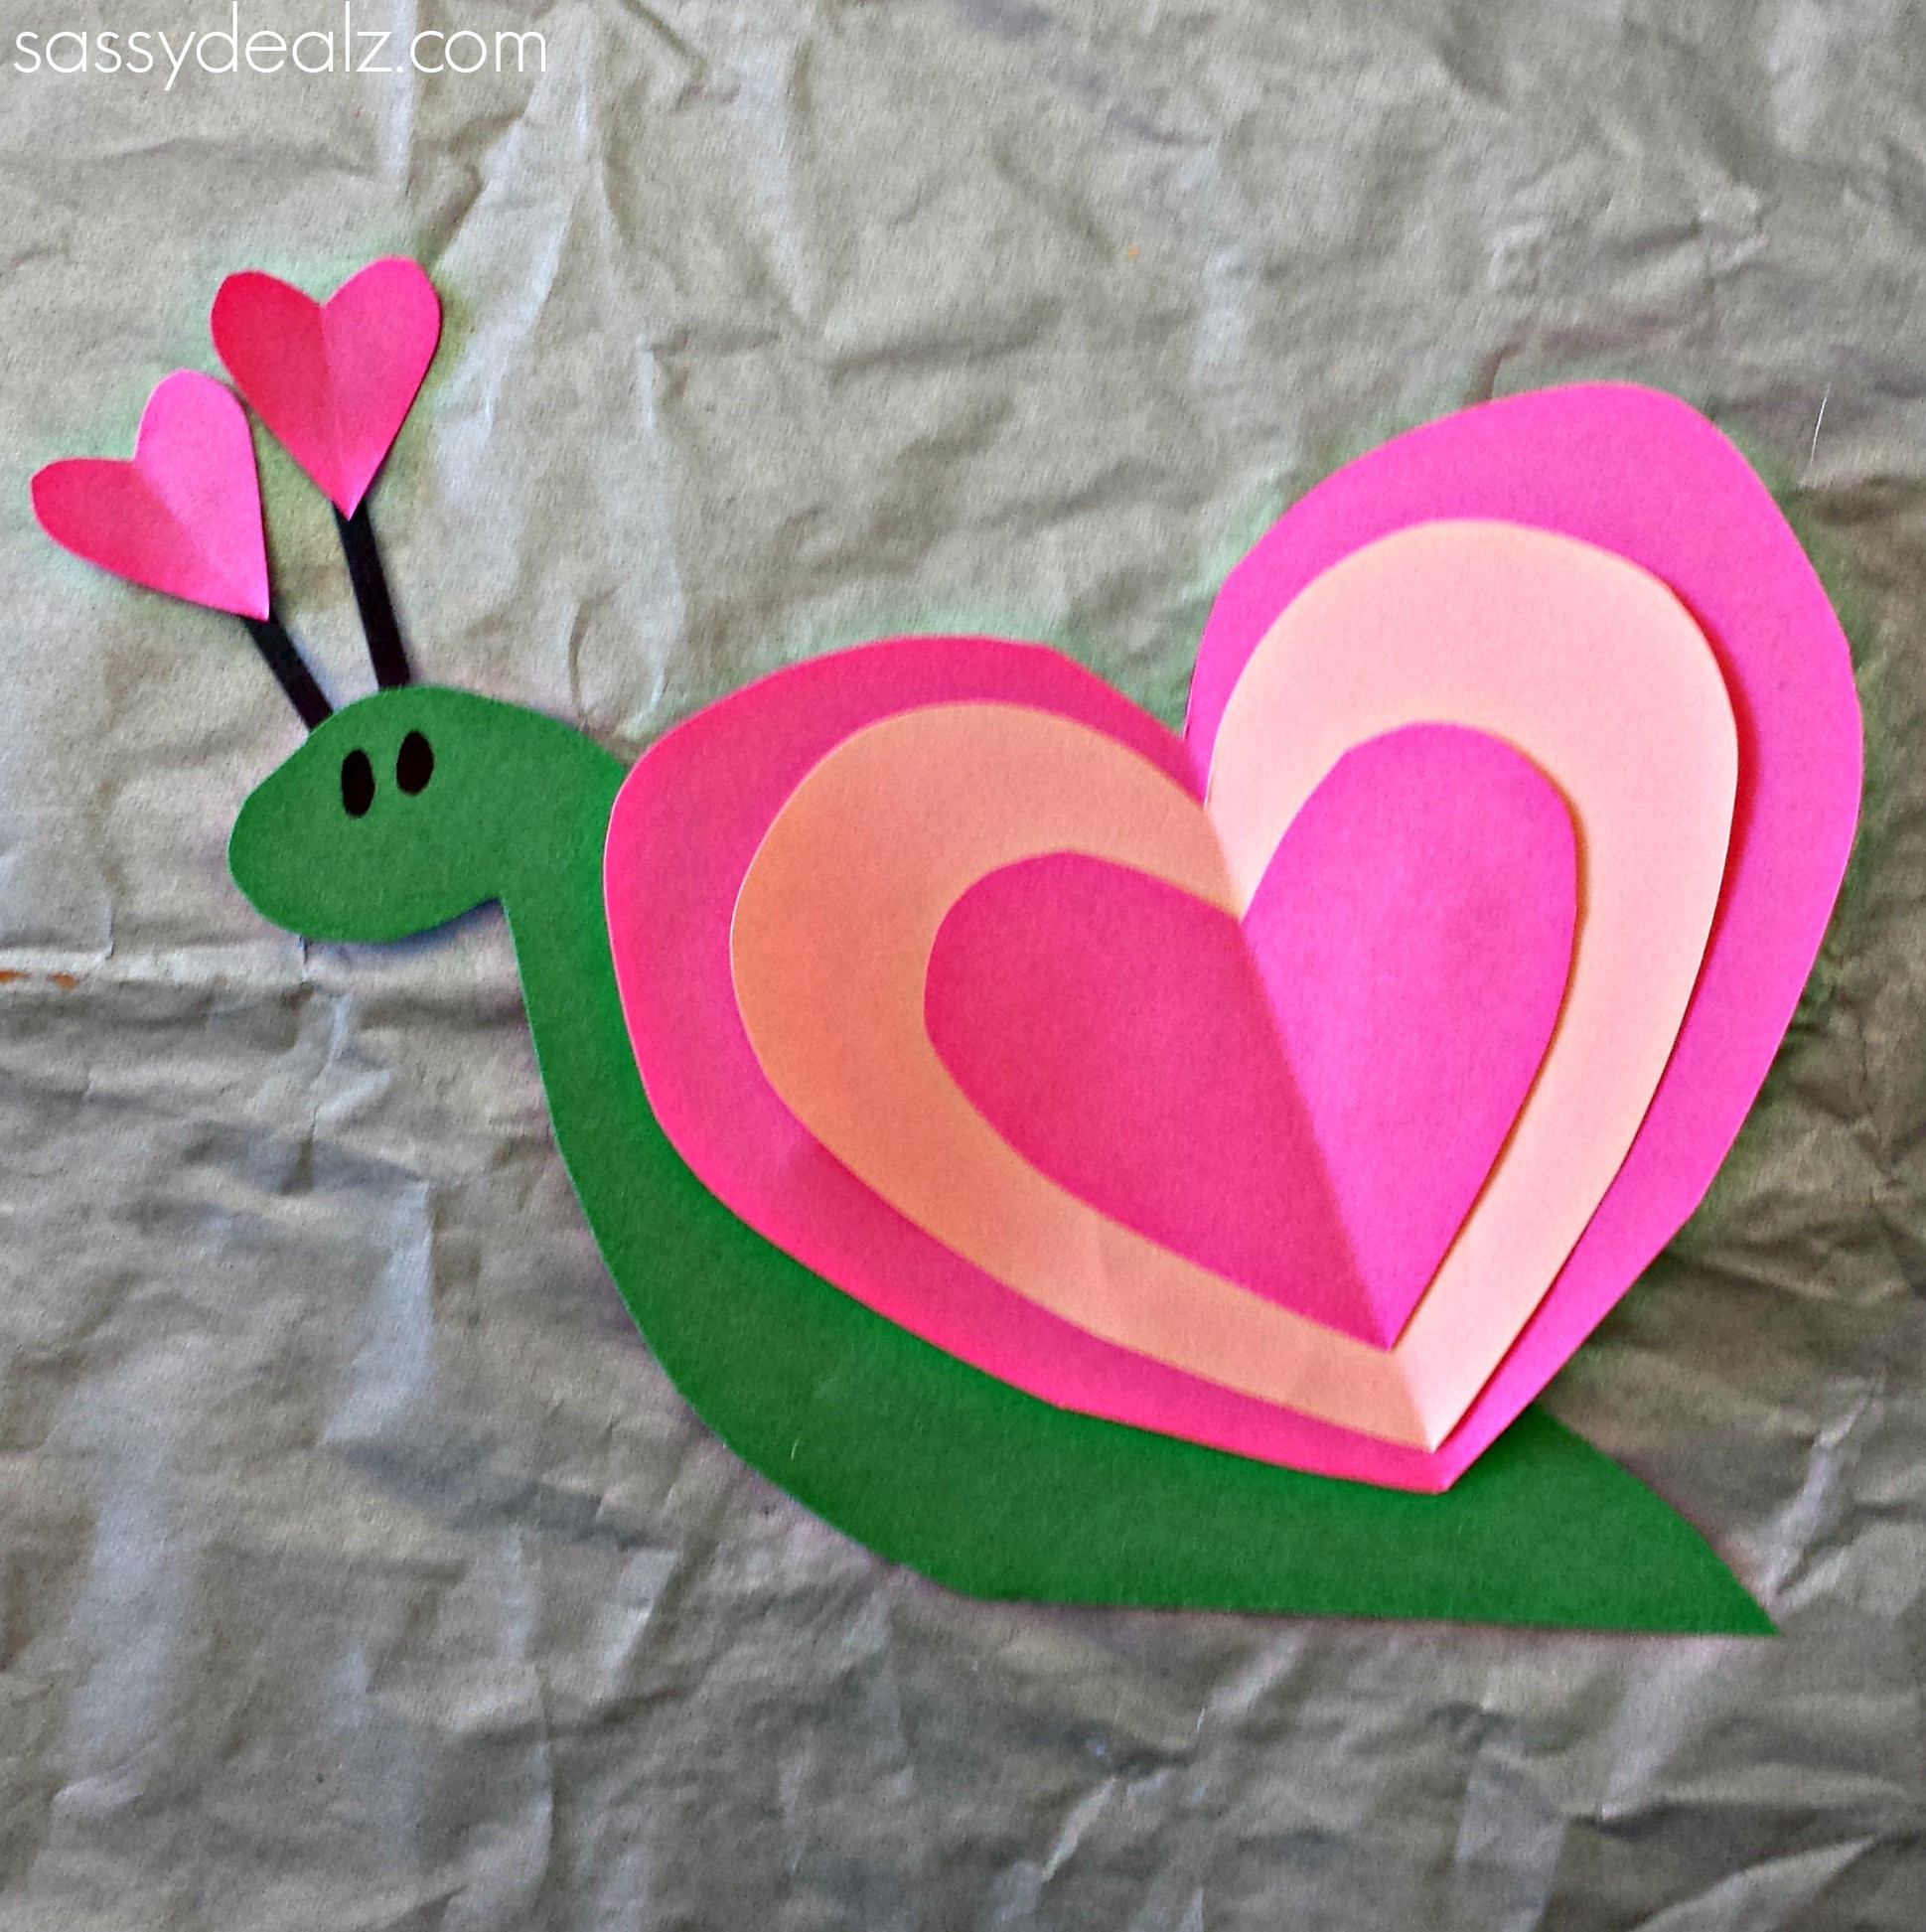 Best ideas about Valentine Arts And Crafts For Preschoolers . Save or Pin Heart Snail Craft For Kids Valentine Art Project Now.